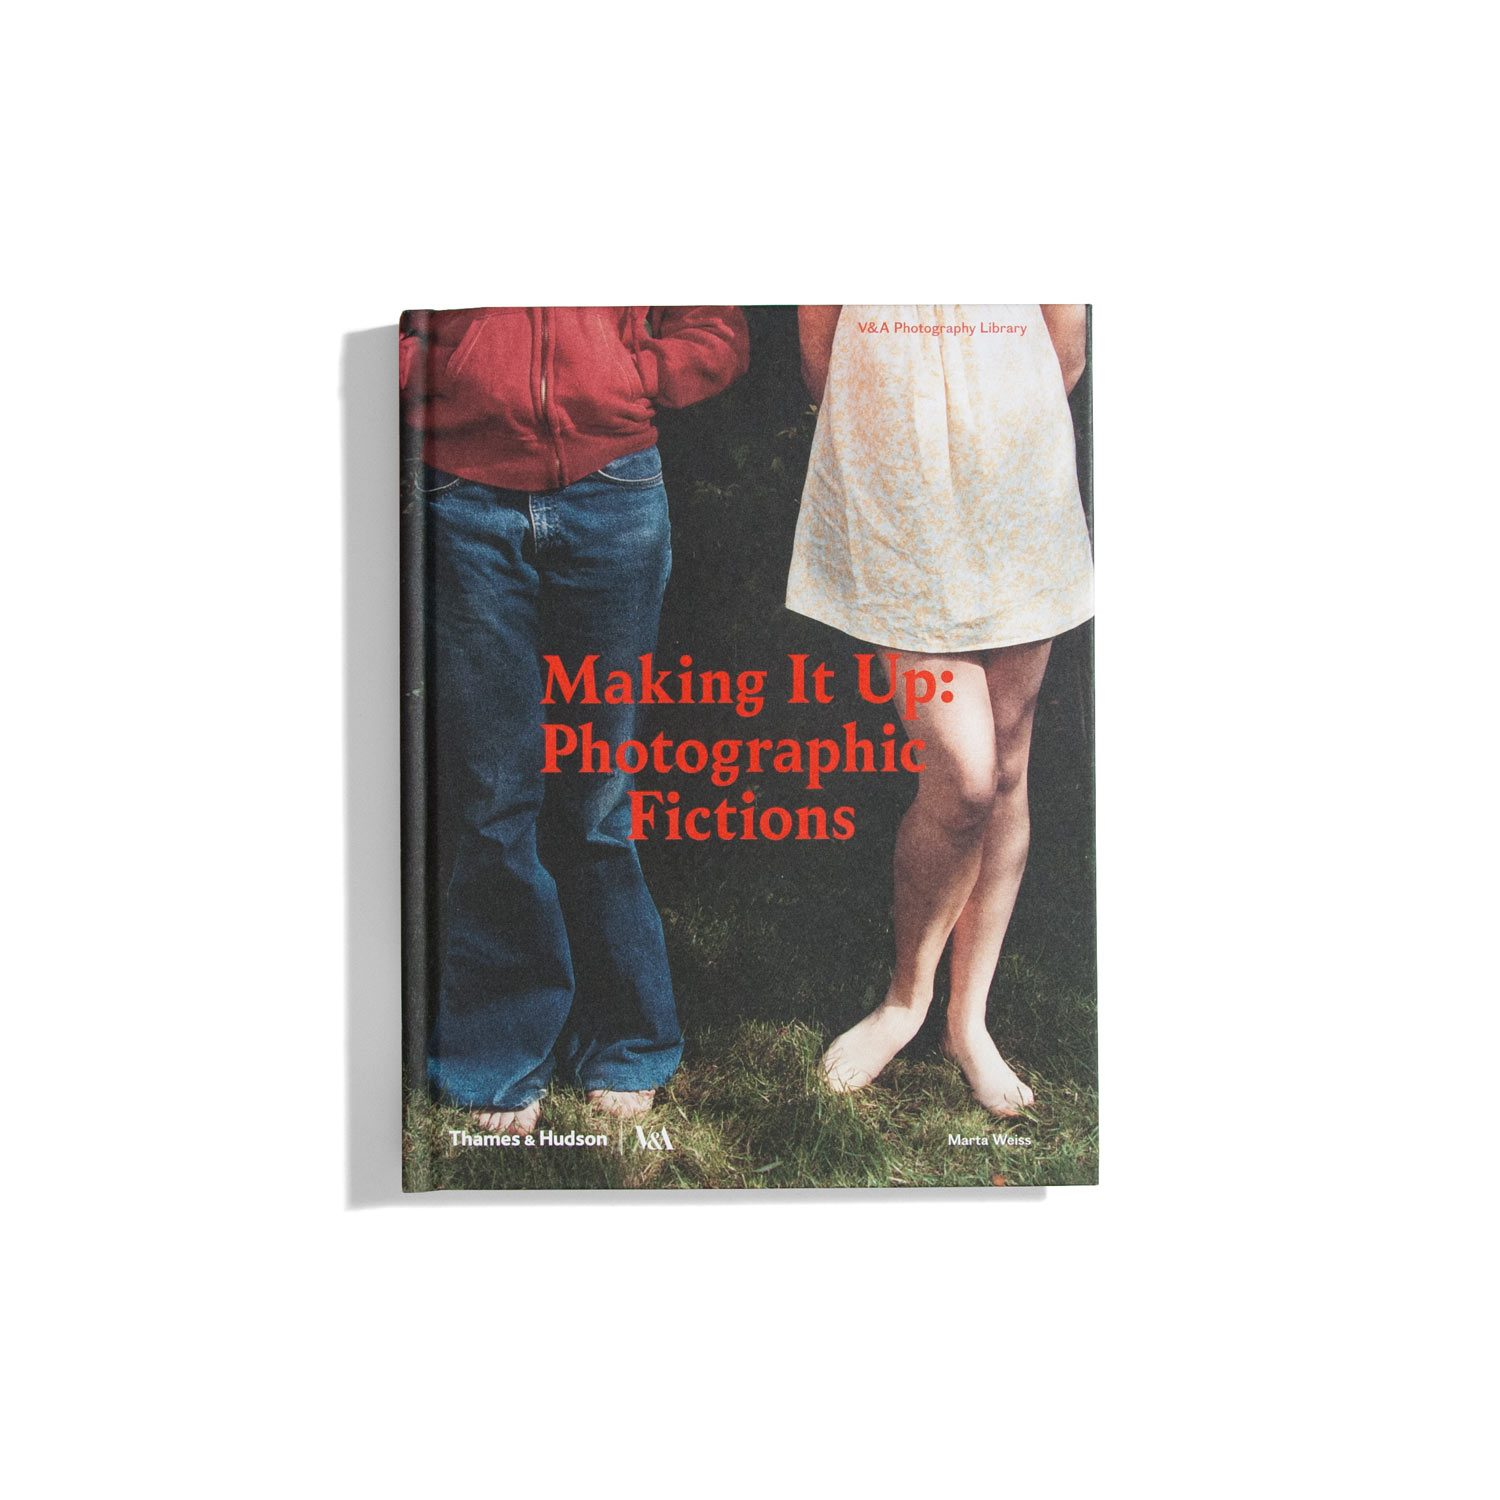 Making it up - Photographic Fictions